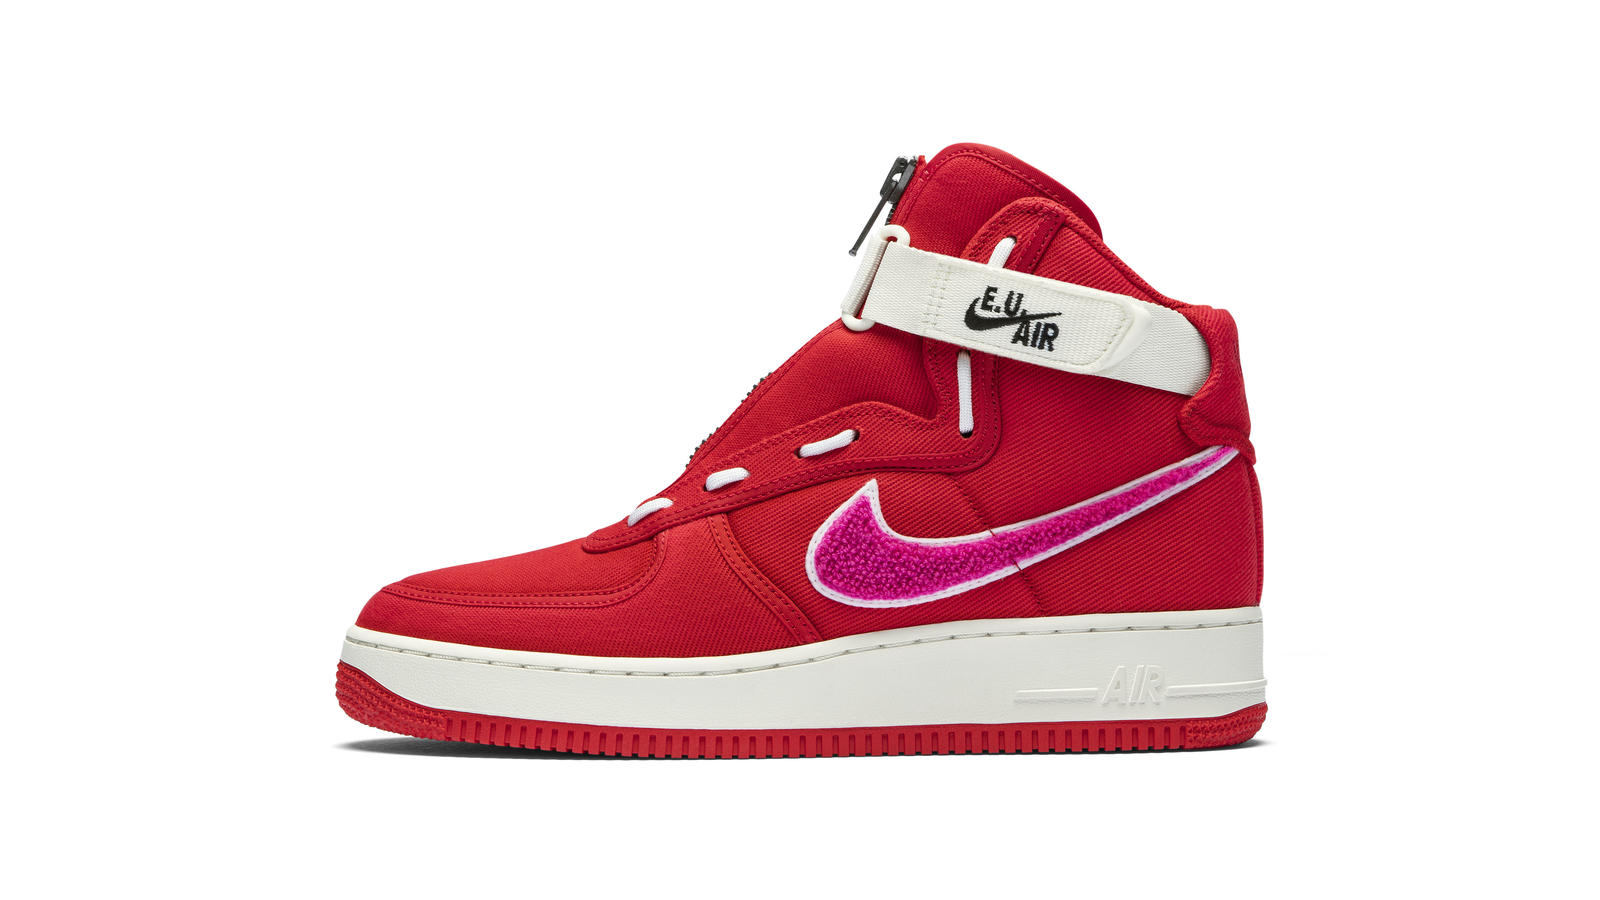 Nike Air Force 1 x Emotionally Unavailable 13